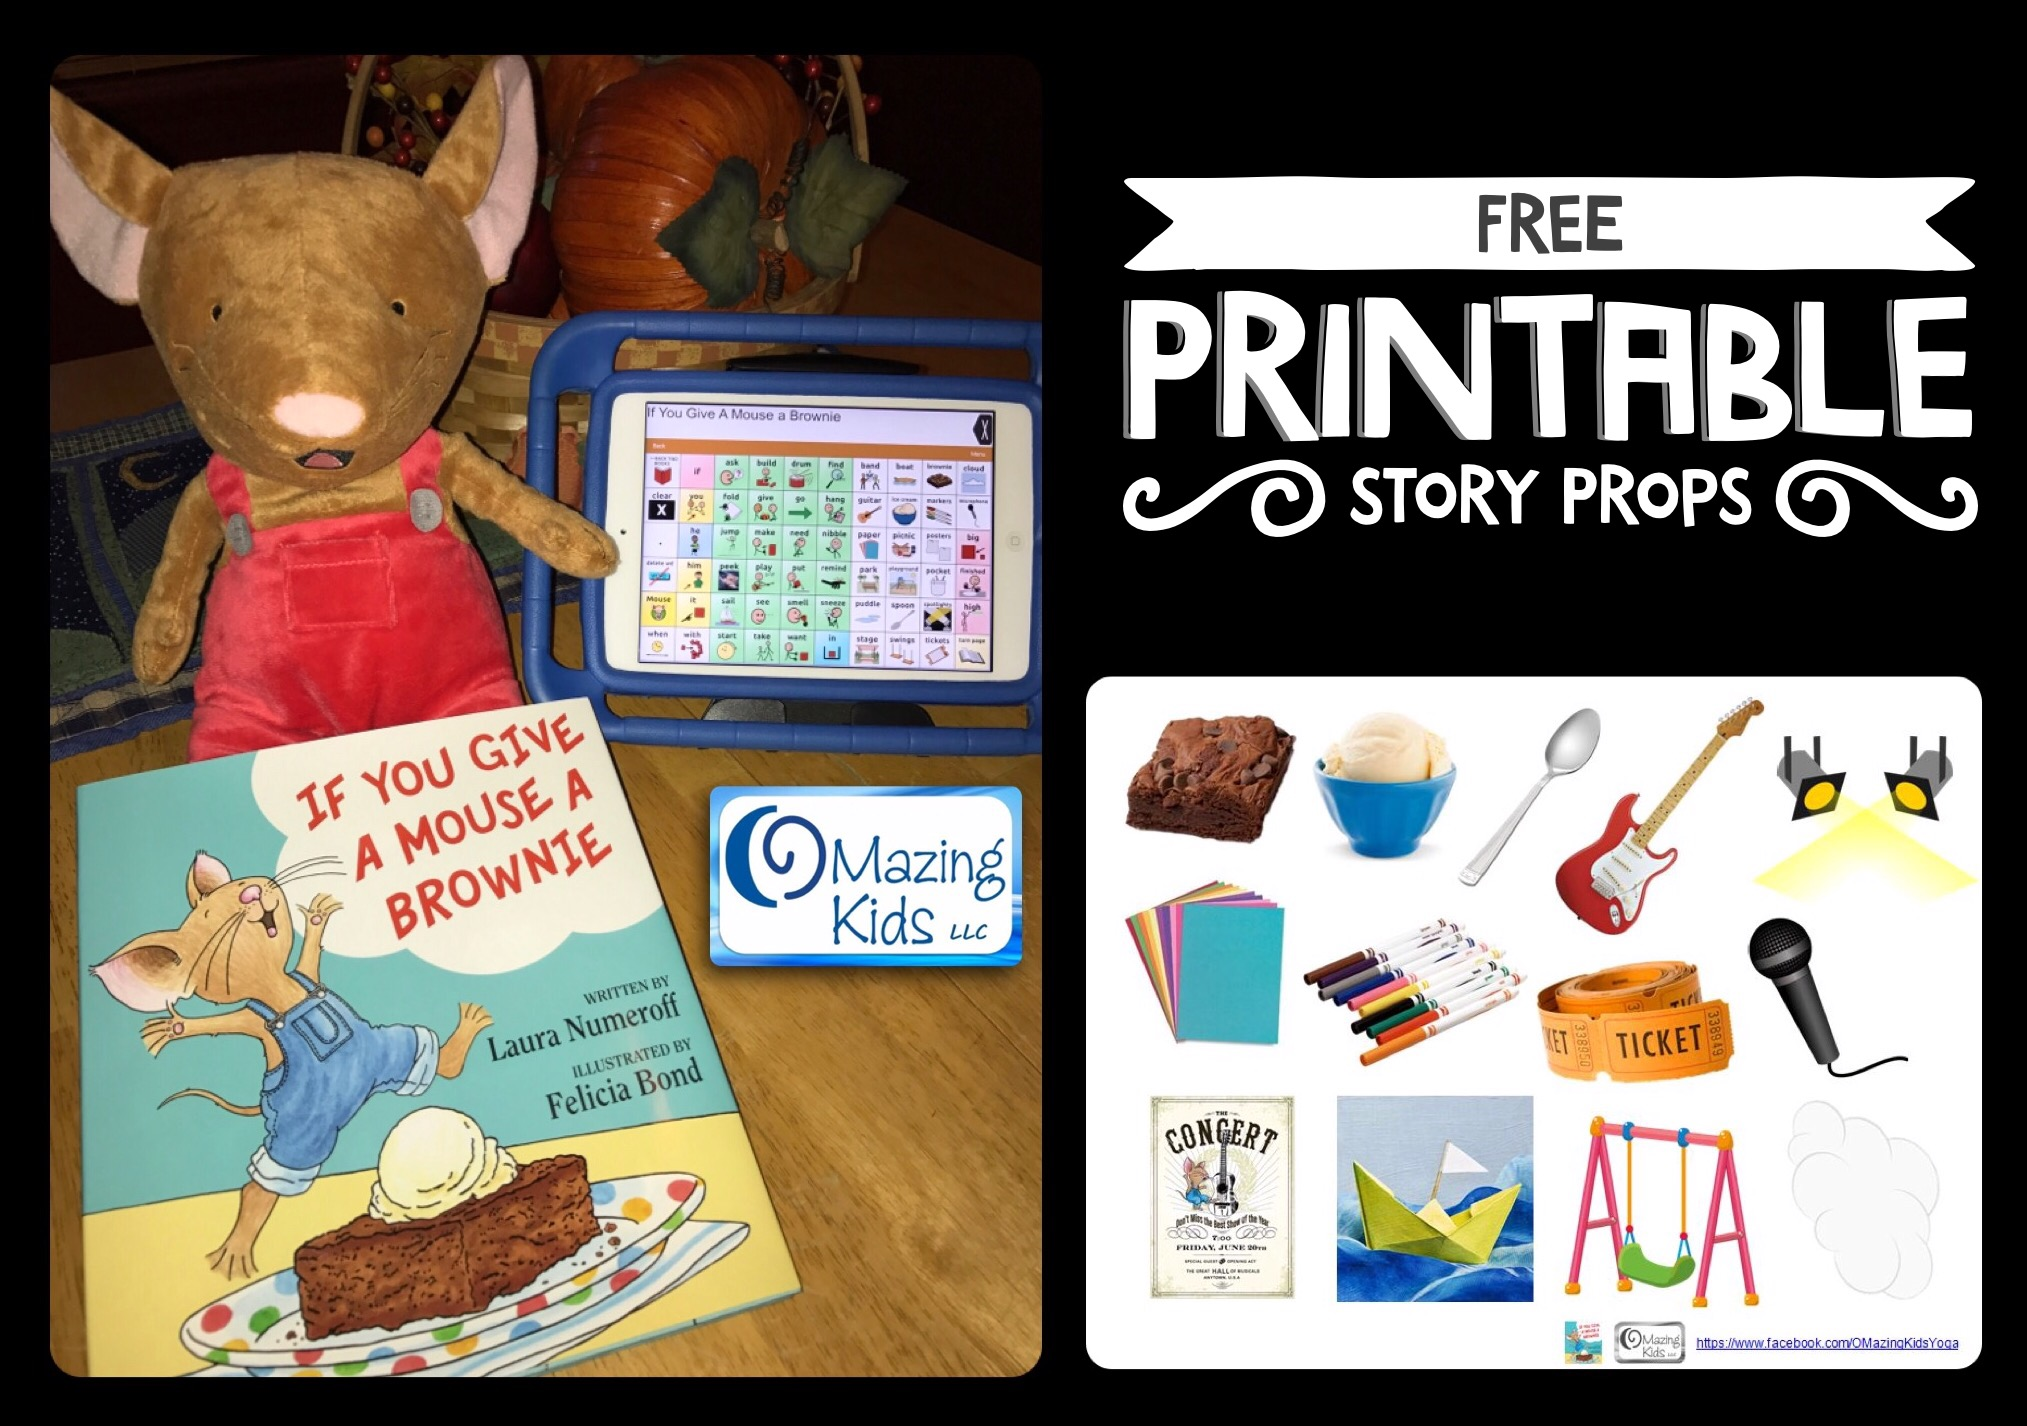 Free Printable If You Give A Mouse A Brownie Story Props Omazing Kids